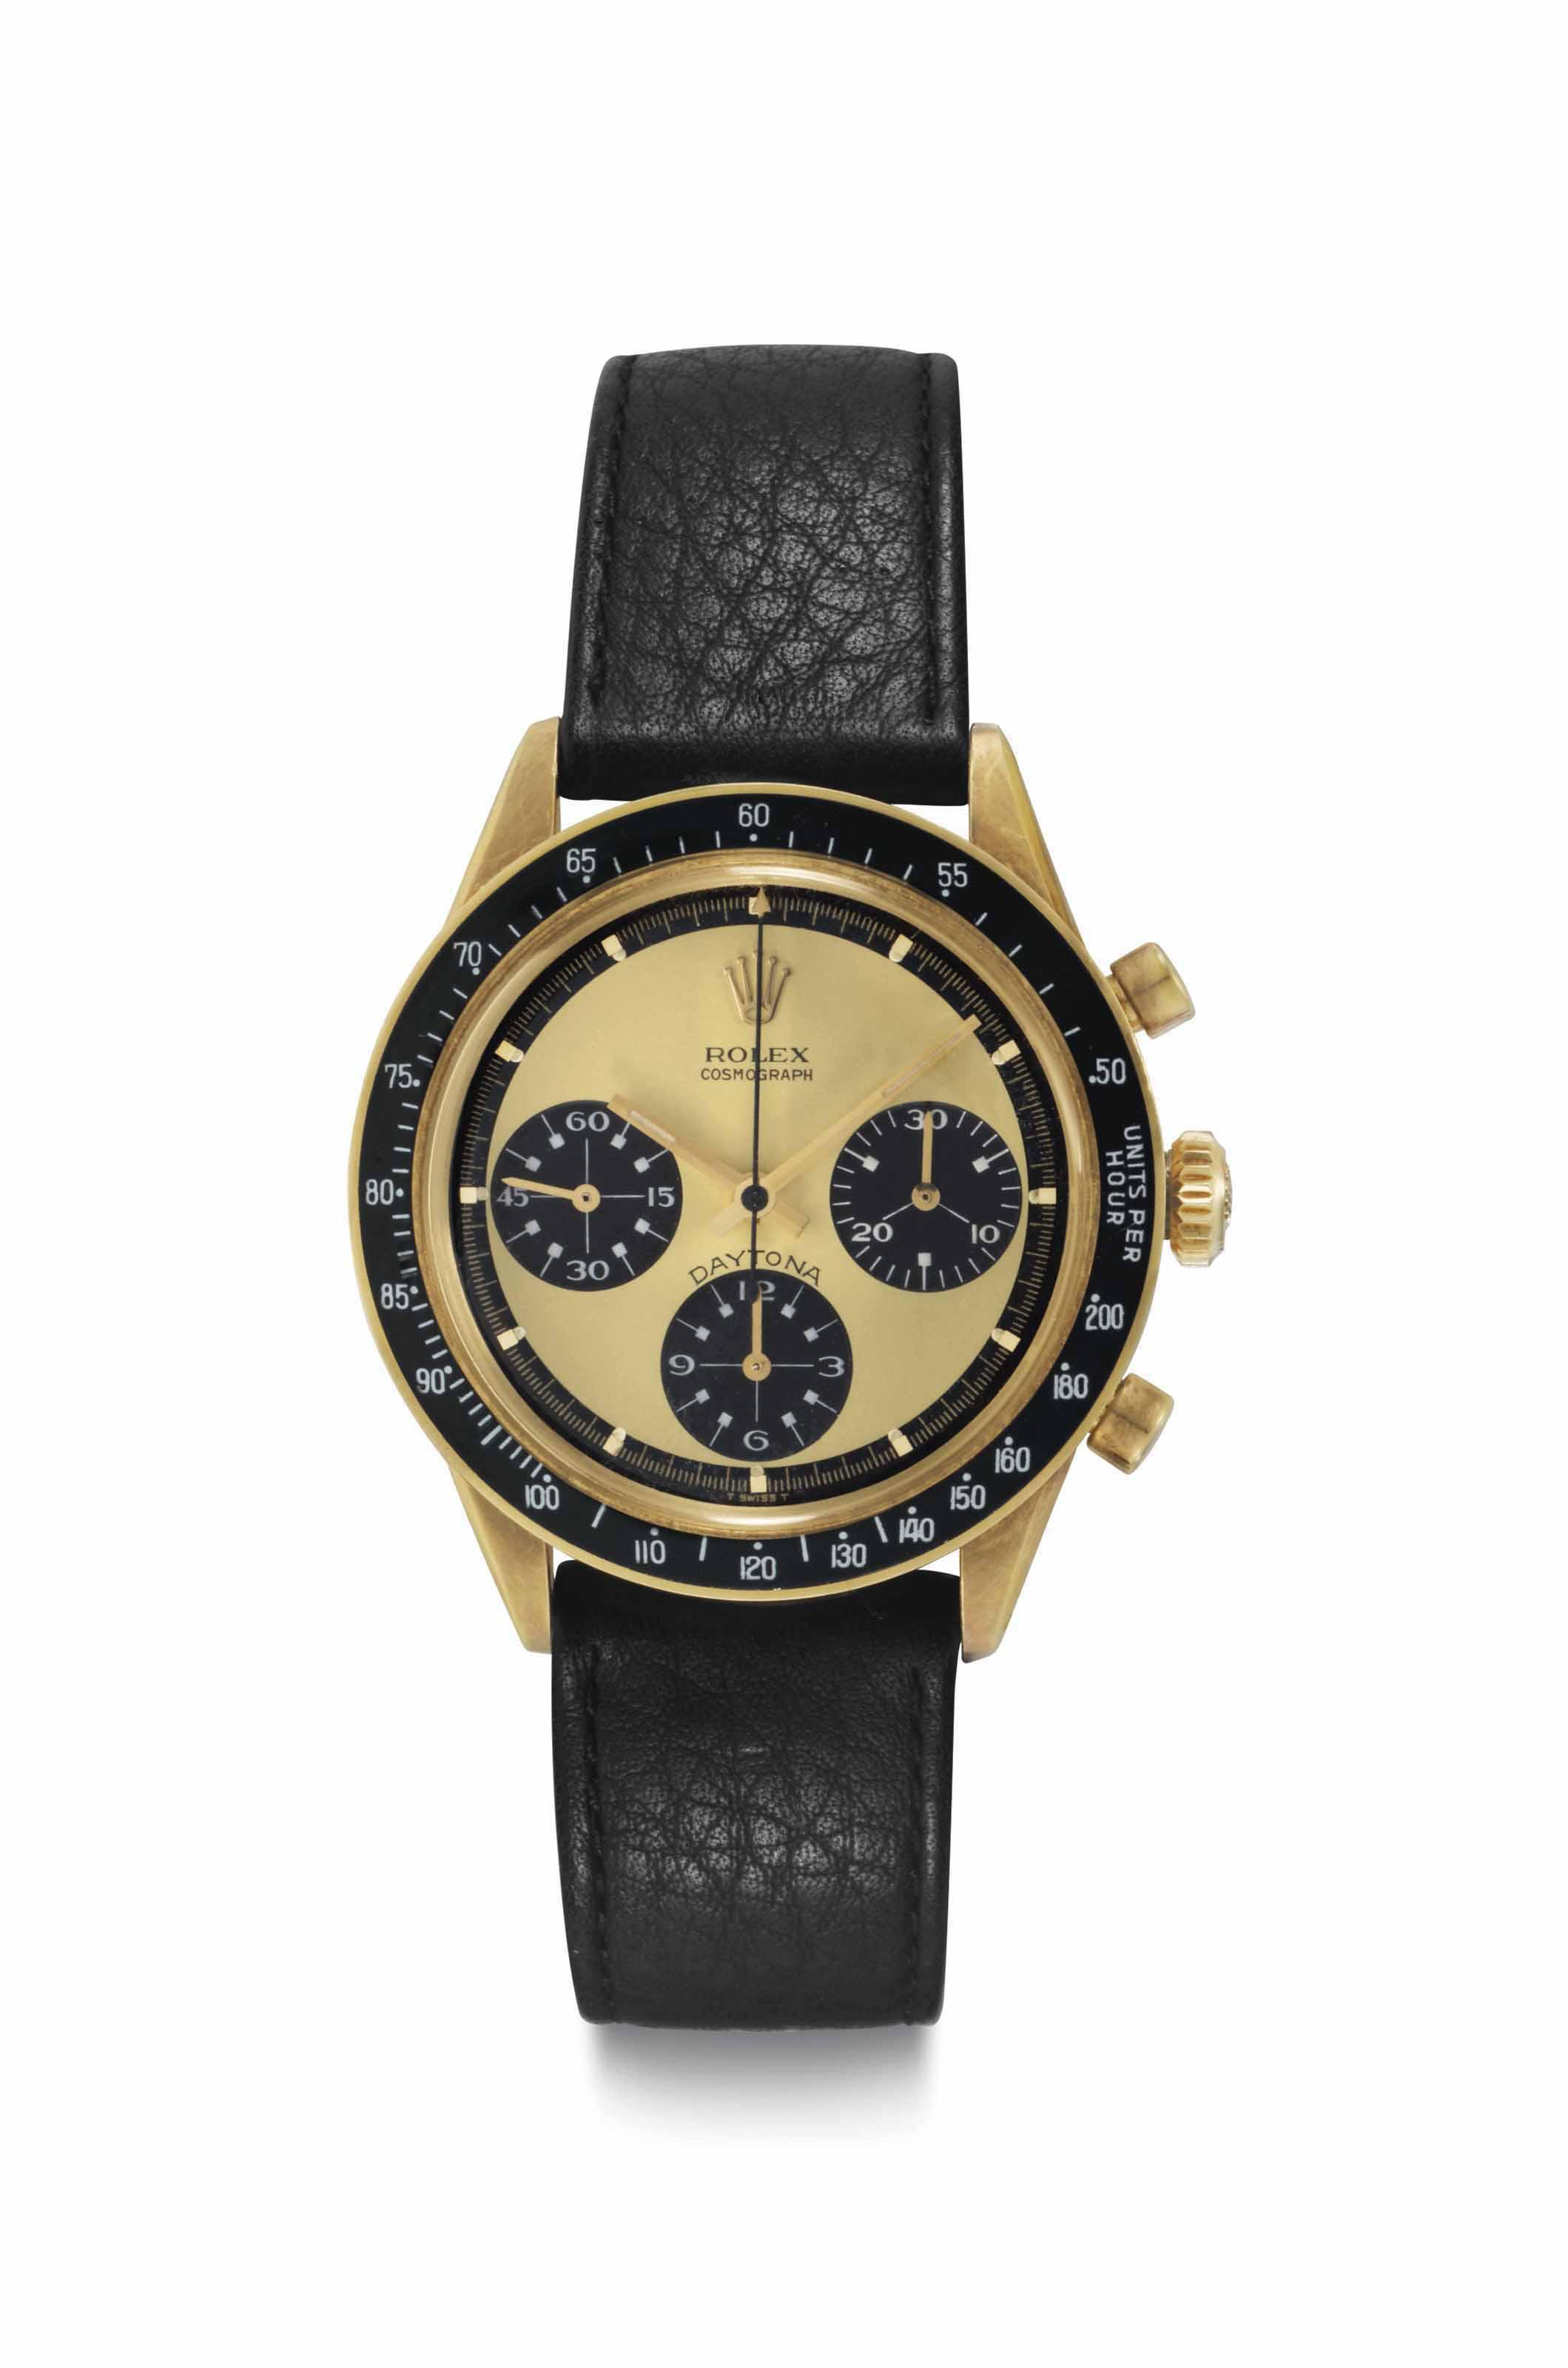 fc39a2565aa Rolex. An Extremely Rare, Fine, and Attractive 18k Gold Chronograph  Wristwatch with Lemon ''Paul Newman'' Dial and White Numerals to the  Subsidiary Dials ...